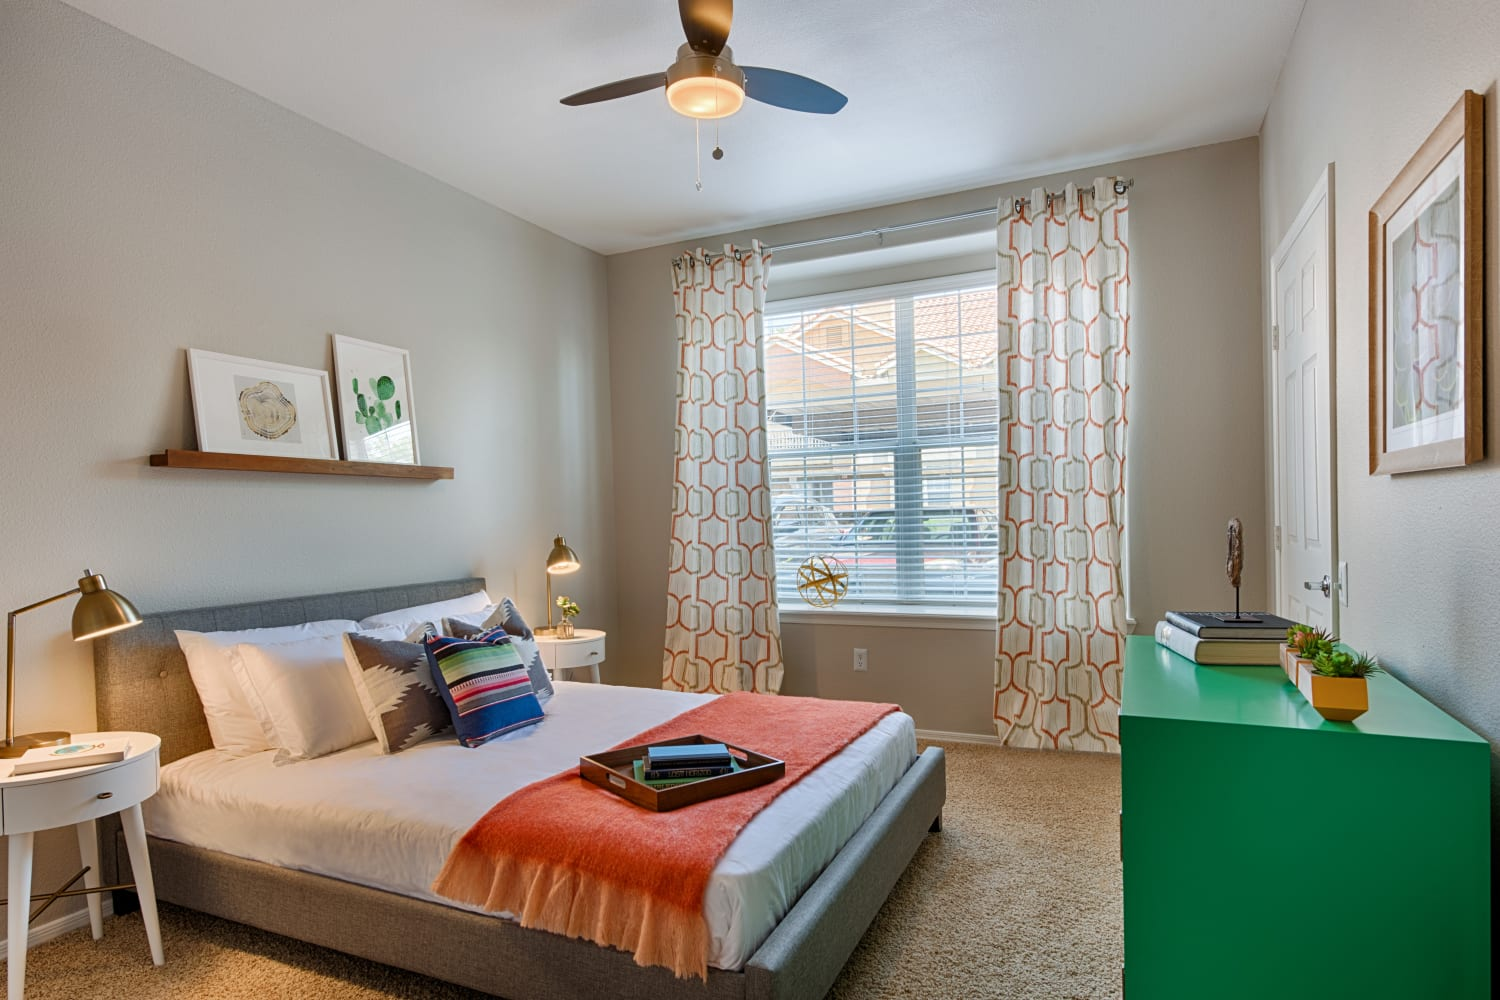 Enjoy large bedrooms with big windows to let the light in at Sonoran Vista Apartments in Scottsdale, Arizona